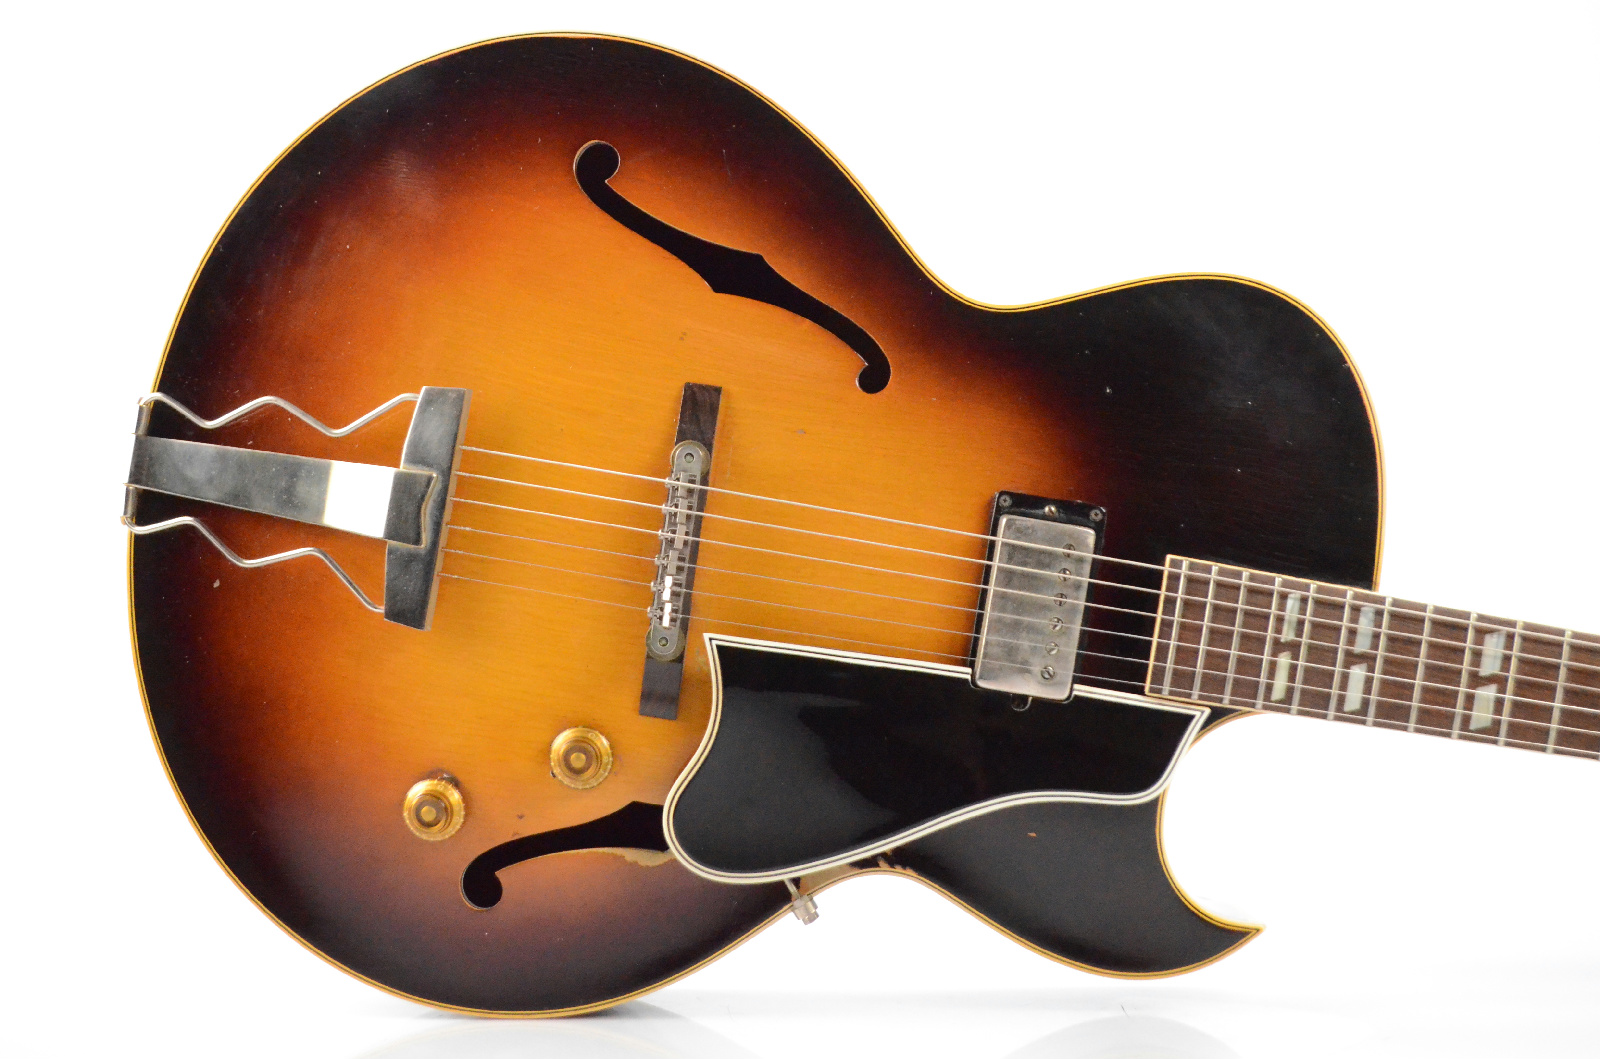 1958 Gibson ES-175 Sunburst Electric Guitar w/ Original Case PAF Pickup #33609